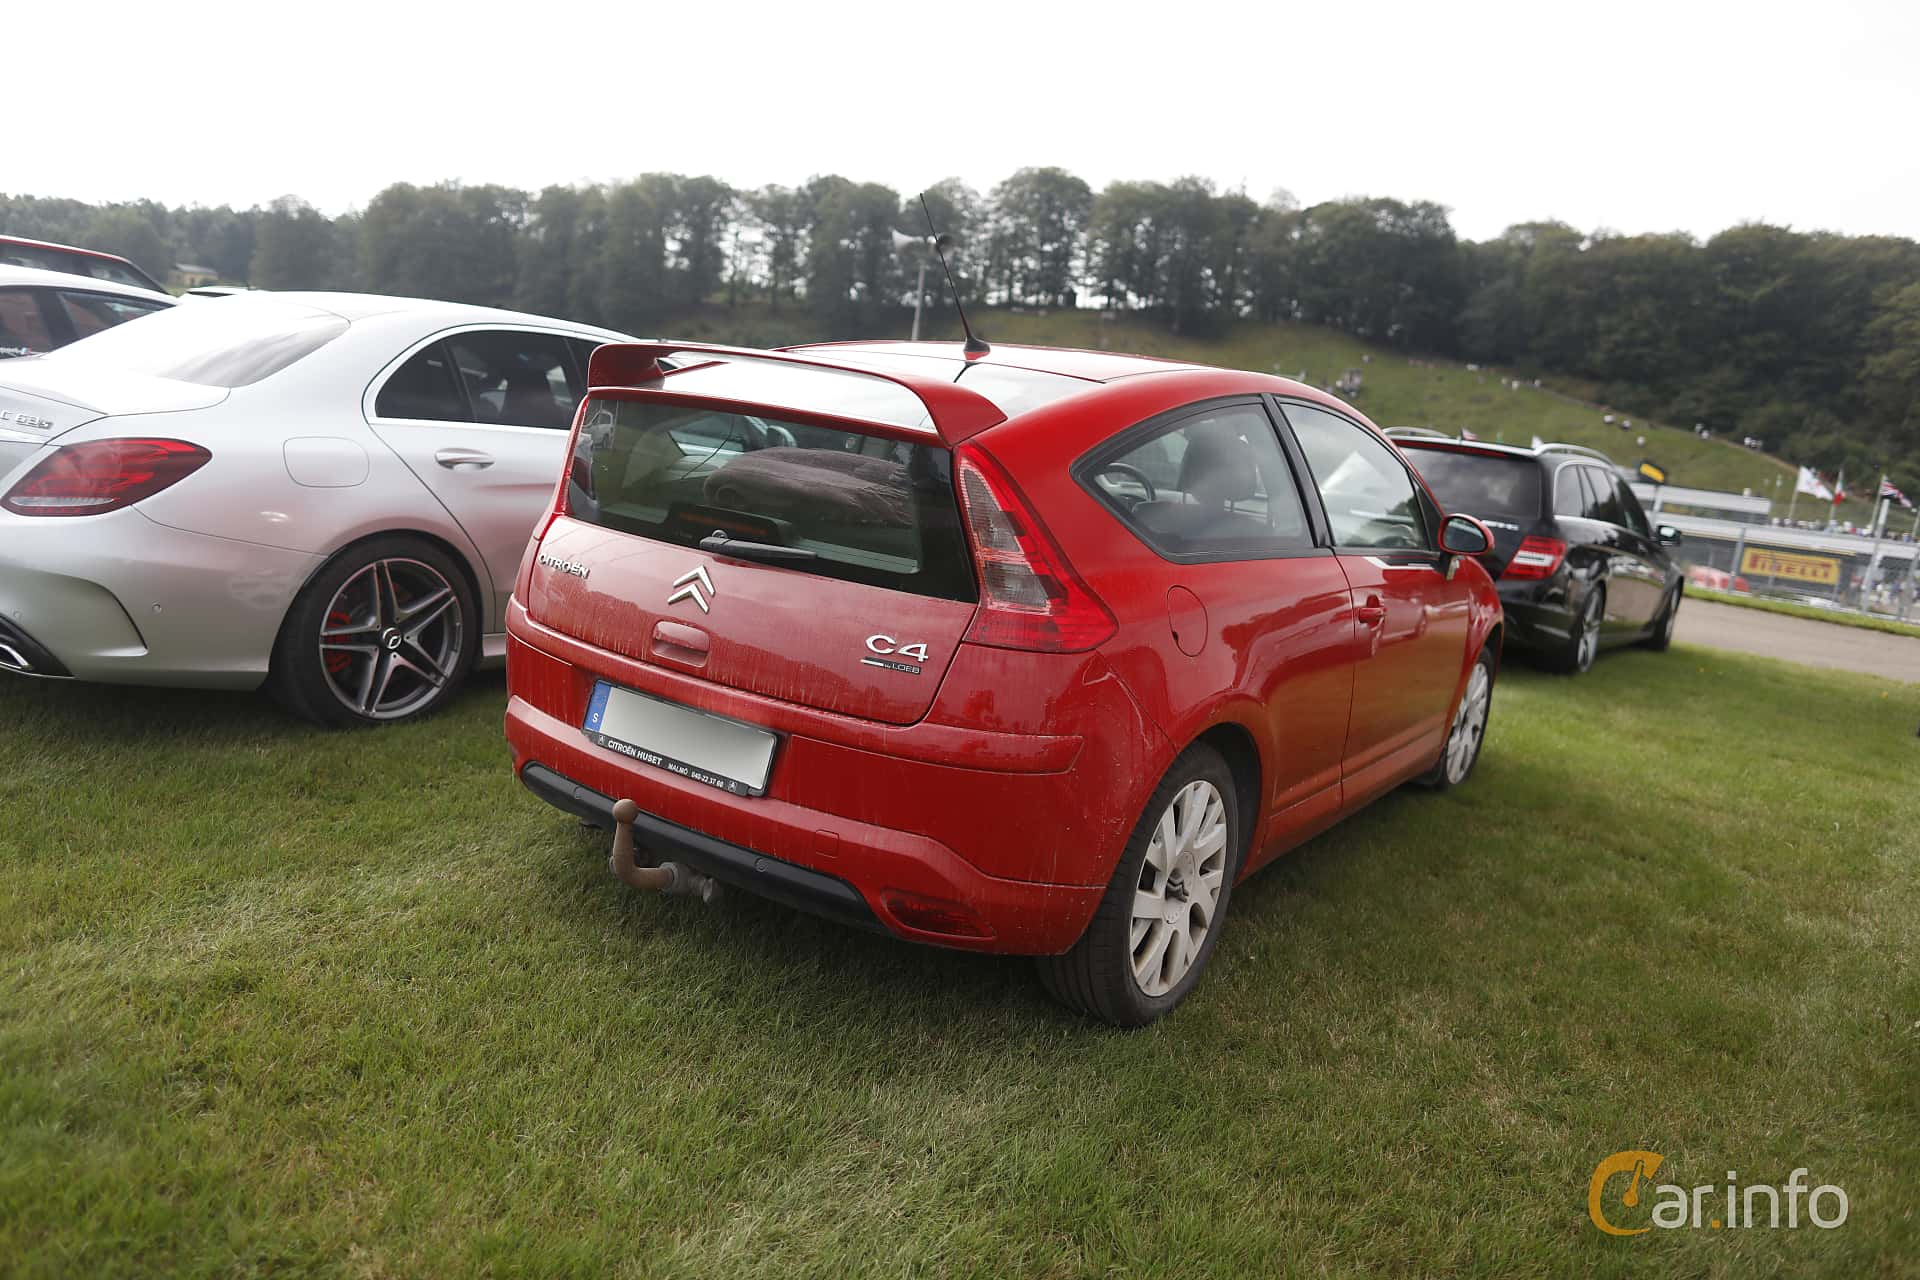 Citroën C4 Coupe 2.0 Manual, 140hp, 2007 at Autoropa Racing day Knutstorp 2019